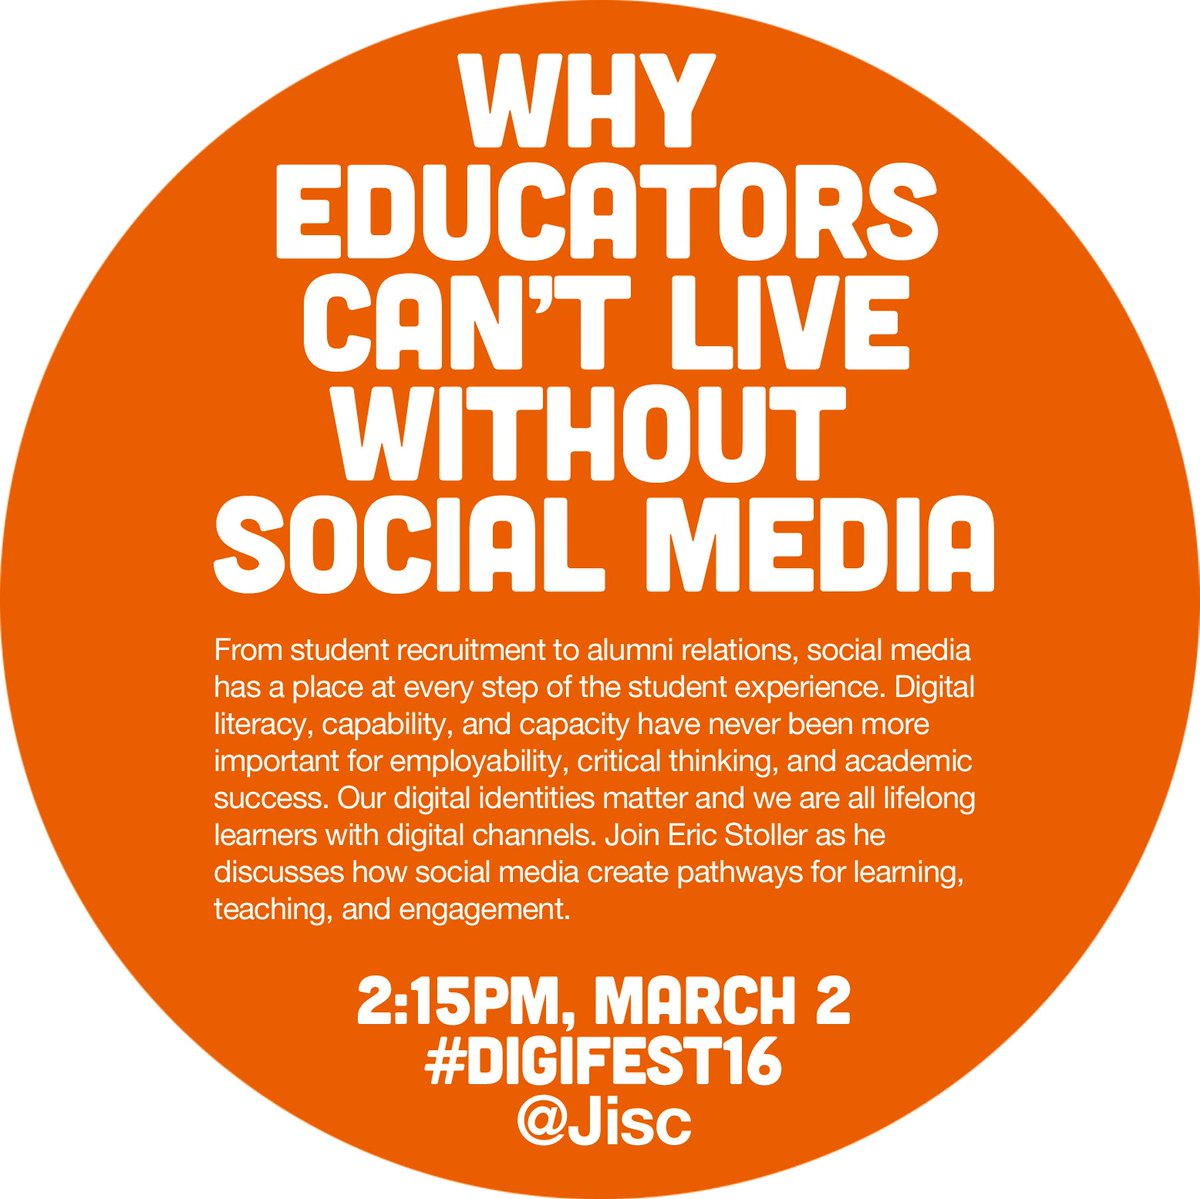 Why Educators Can't Live Without Social Media - next week at @Jisc #digifest16 https://t.co/6bWGdHU1qU https://t.co/xTWVh9arNR